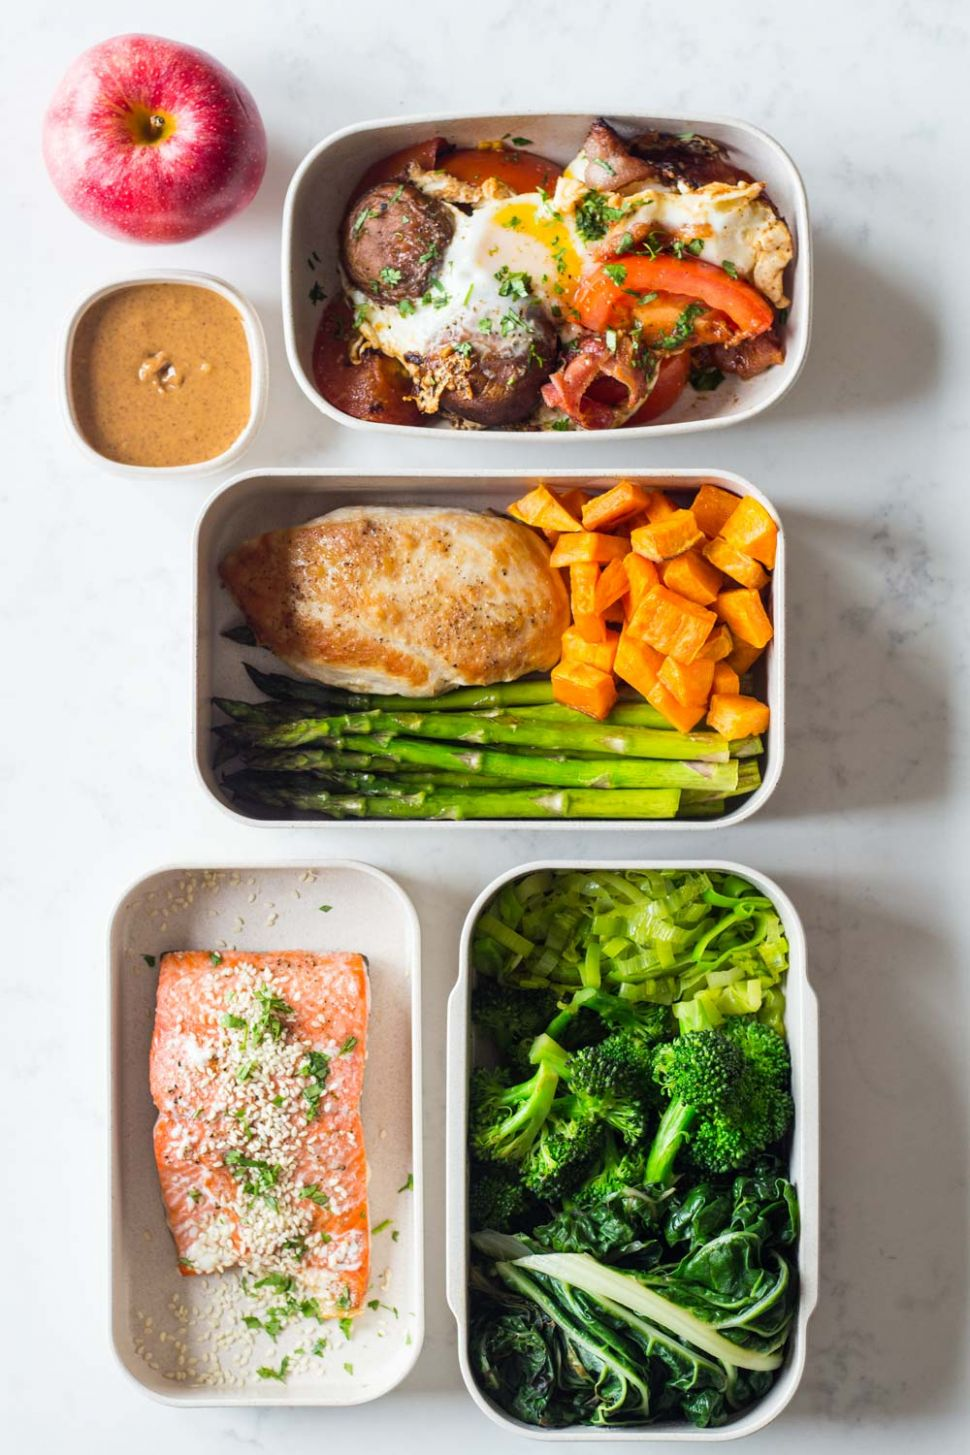 Paleo Meal Plan - Breakfast Recipes Paleo